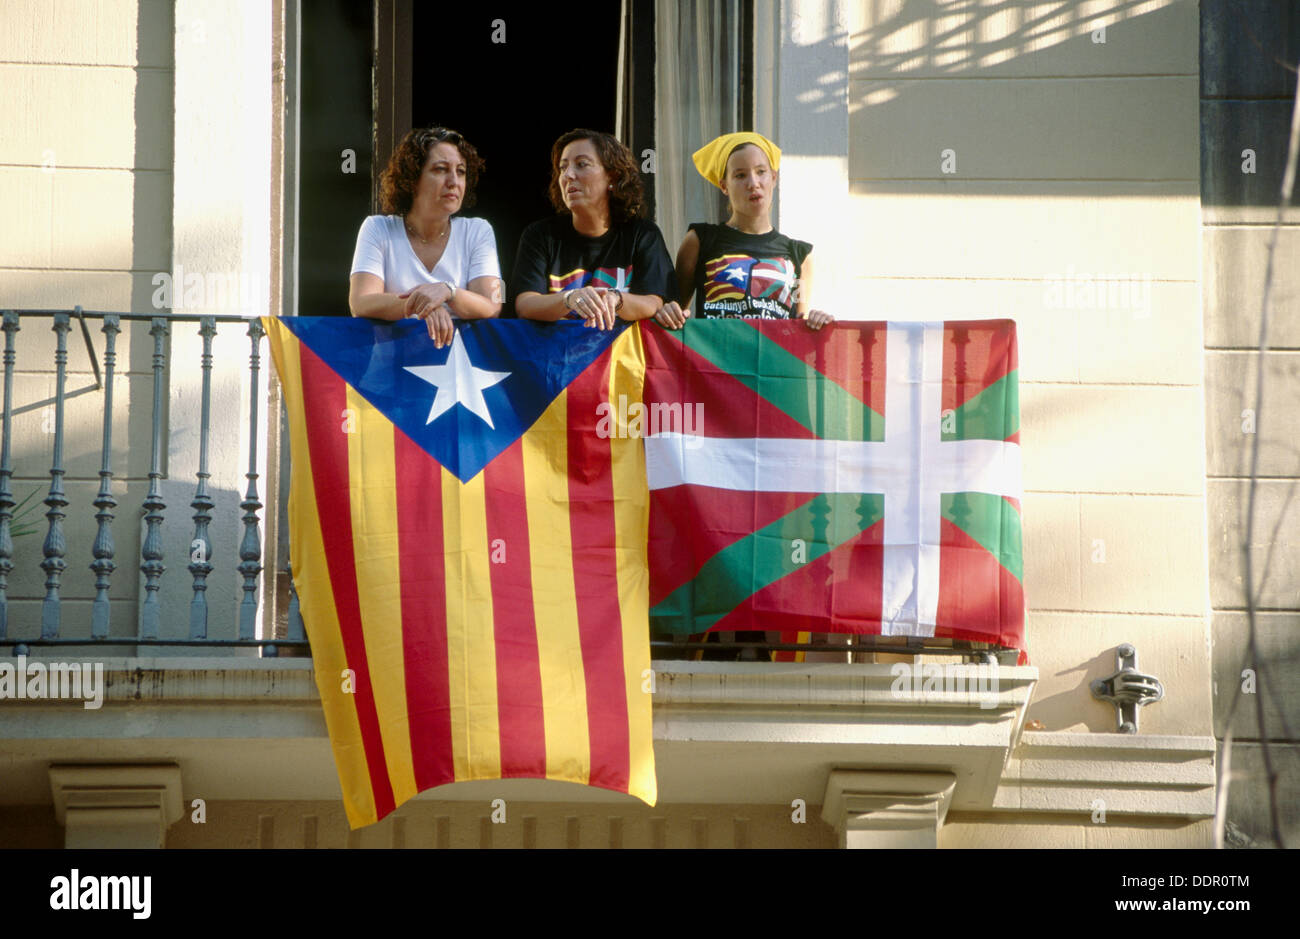 f8b6f348c5 Basque Independence Stock Photos   Basque Independence Stock Images ...